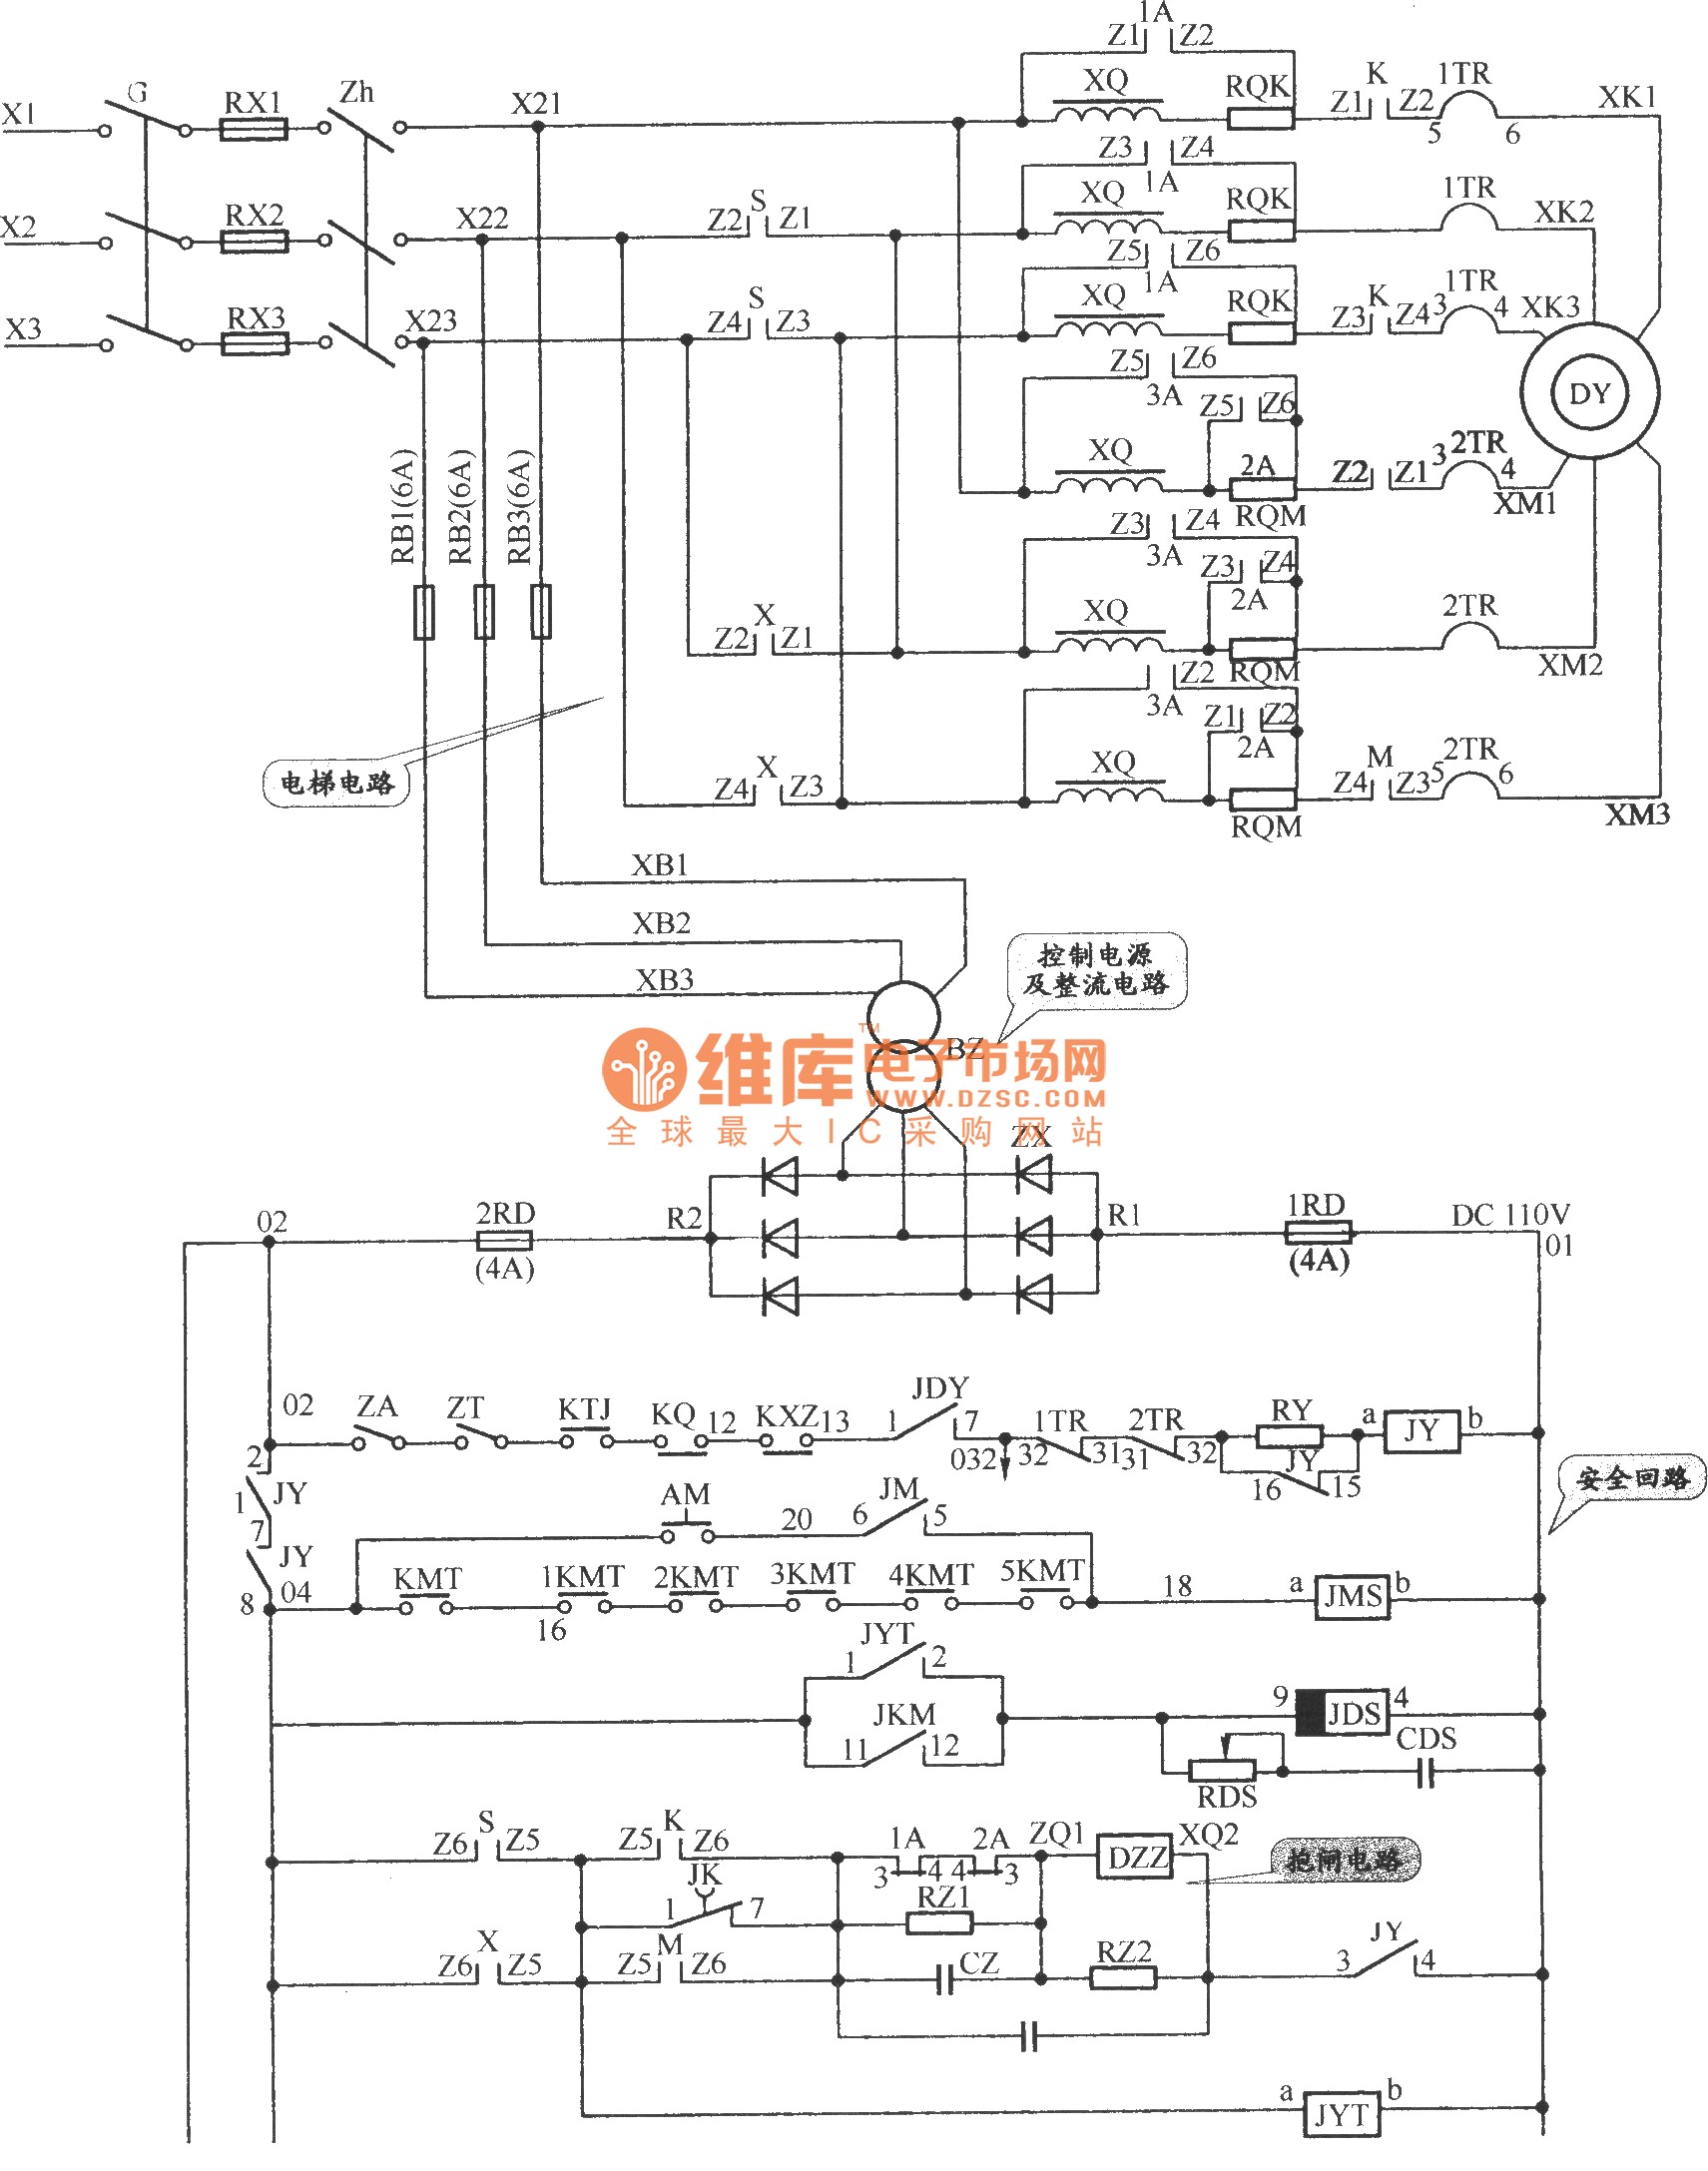 elevator electrical wiring diagram 2001 bmw x5 radio electric schematic get free image about